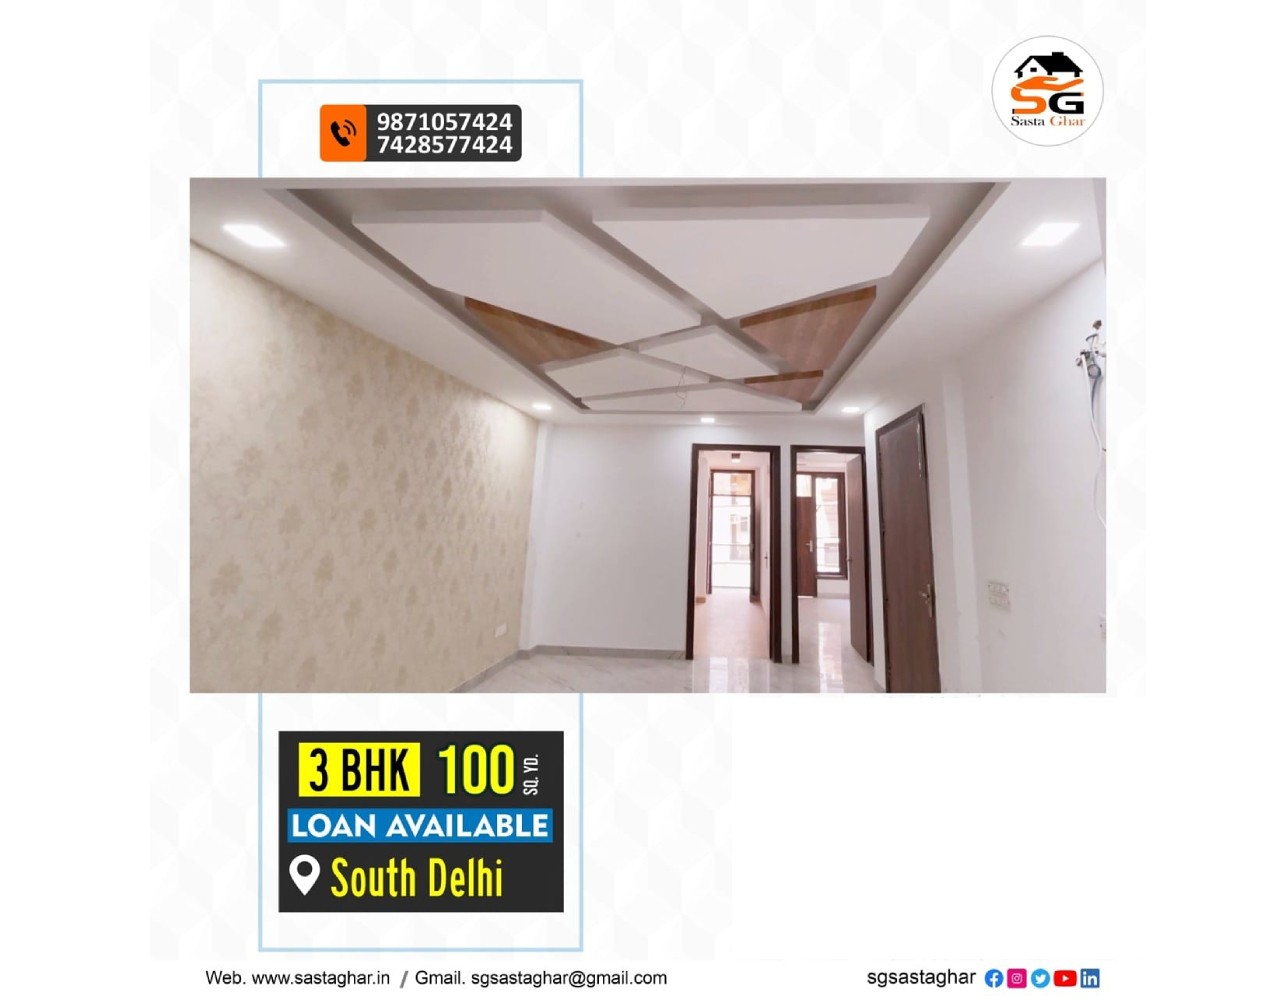 3 BHK flats in South Delhi with bank Loan